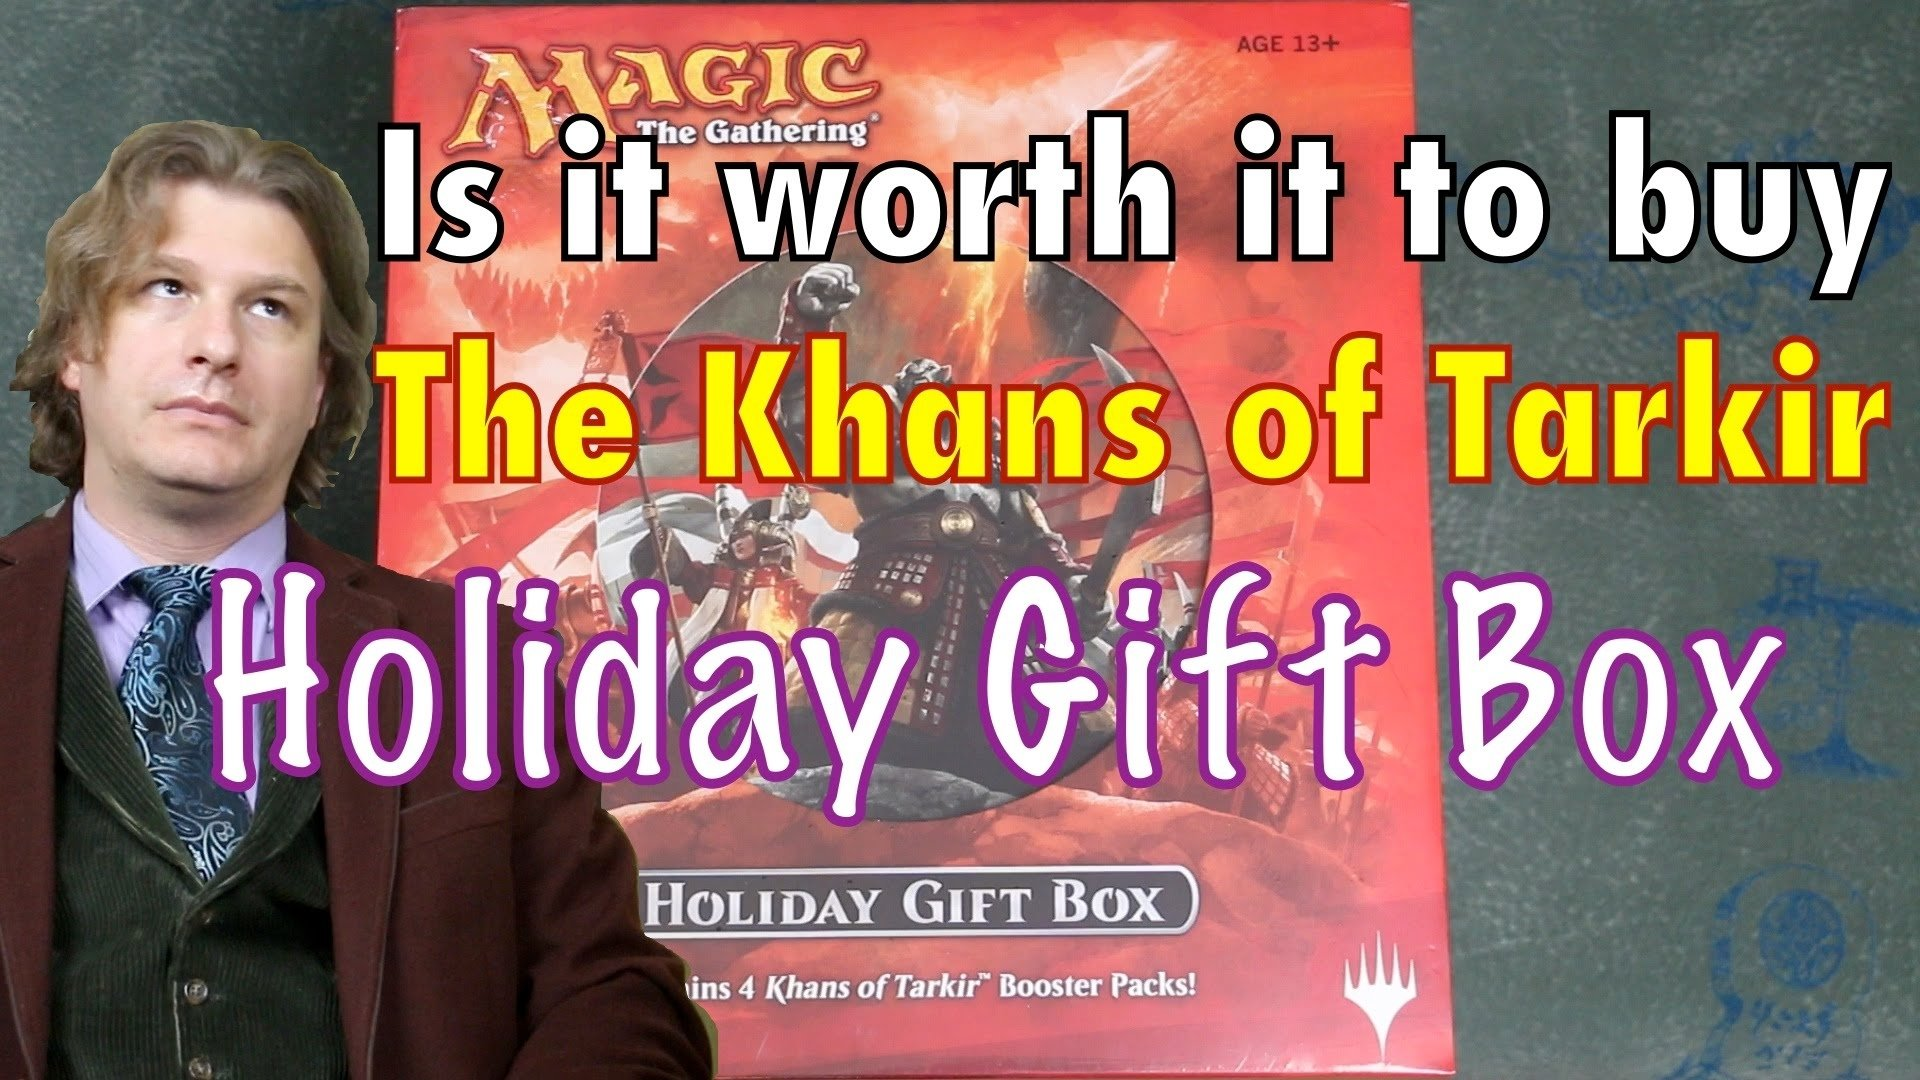 10 Most Popular Magic The Gathering Gift Ideas mtg is it worth it to buy the khans of tarkir holiday gift box 2020